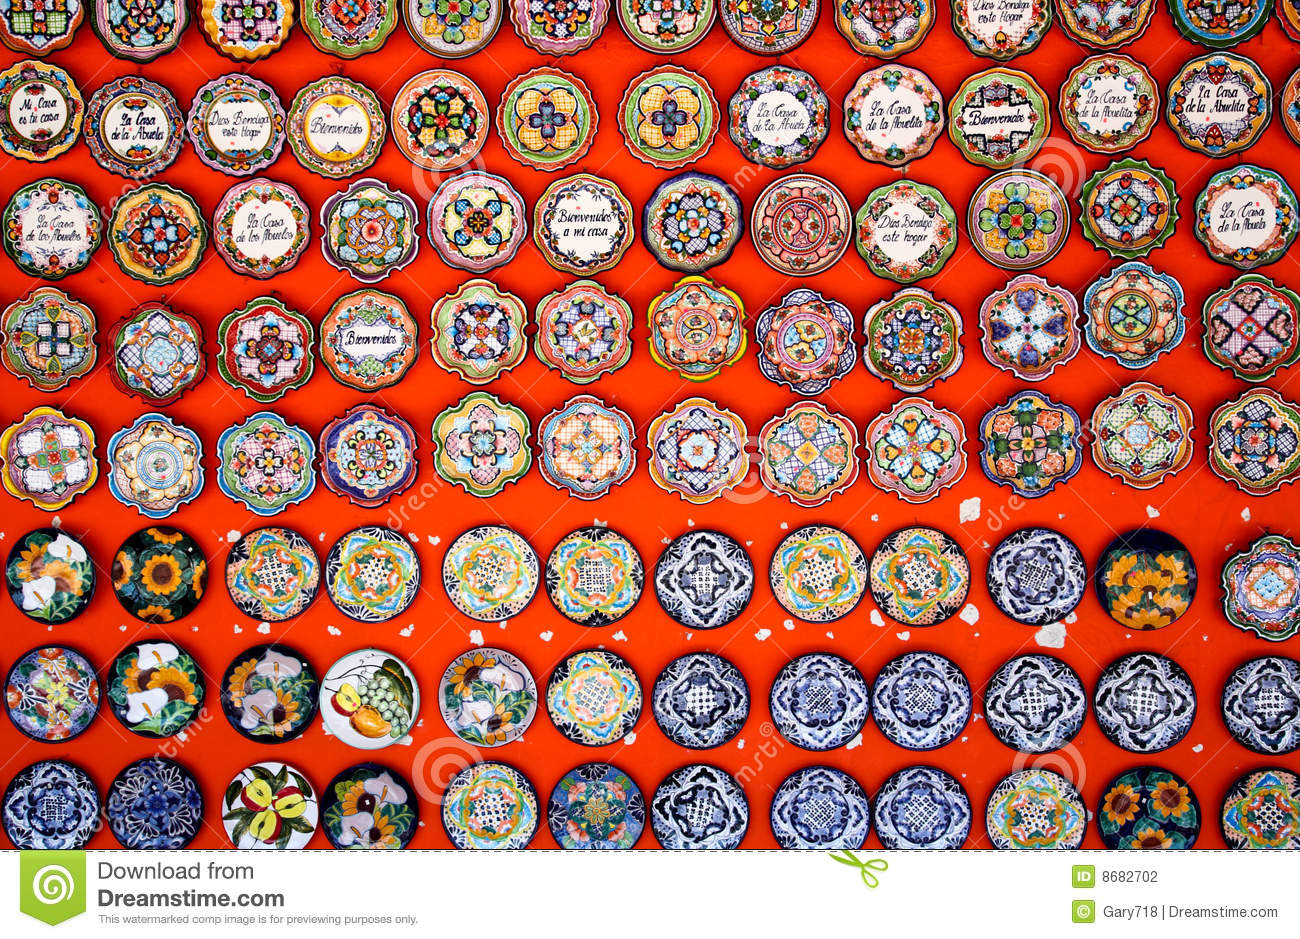 Royalty-Free Stock Photo & Mexican decoration plates stock photo. Image of color - 8682702